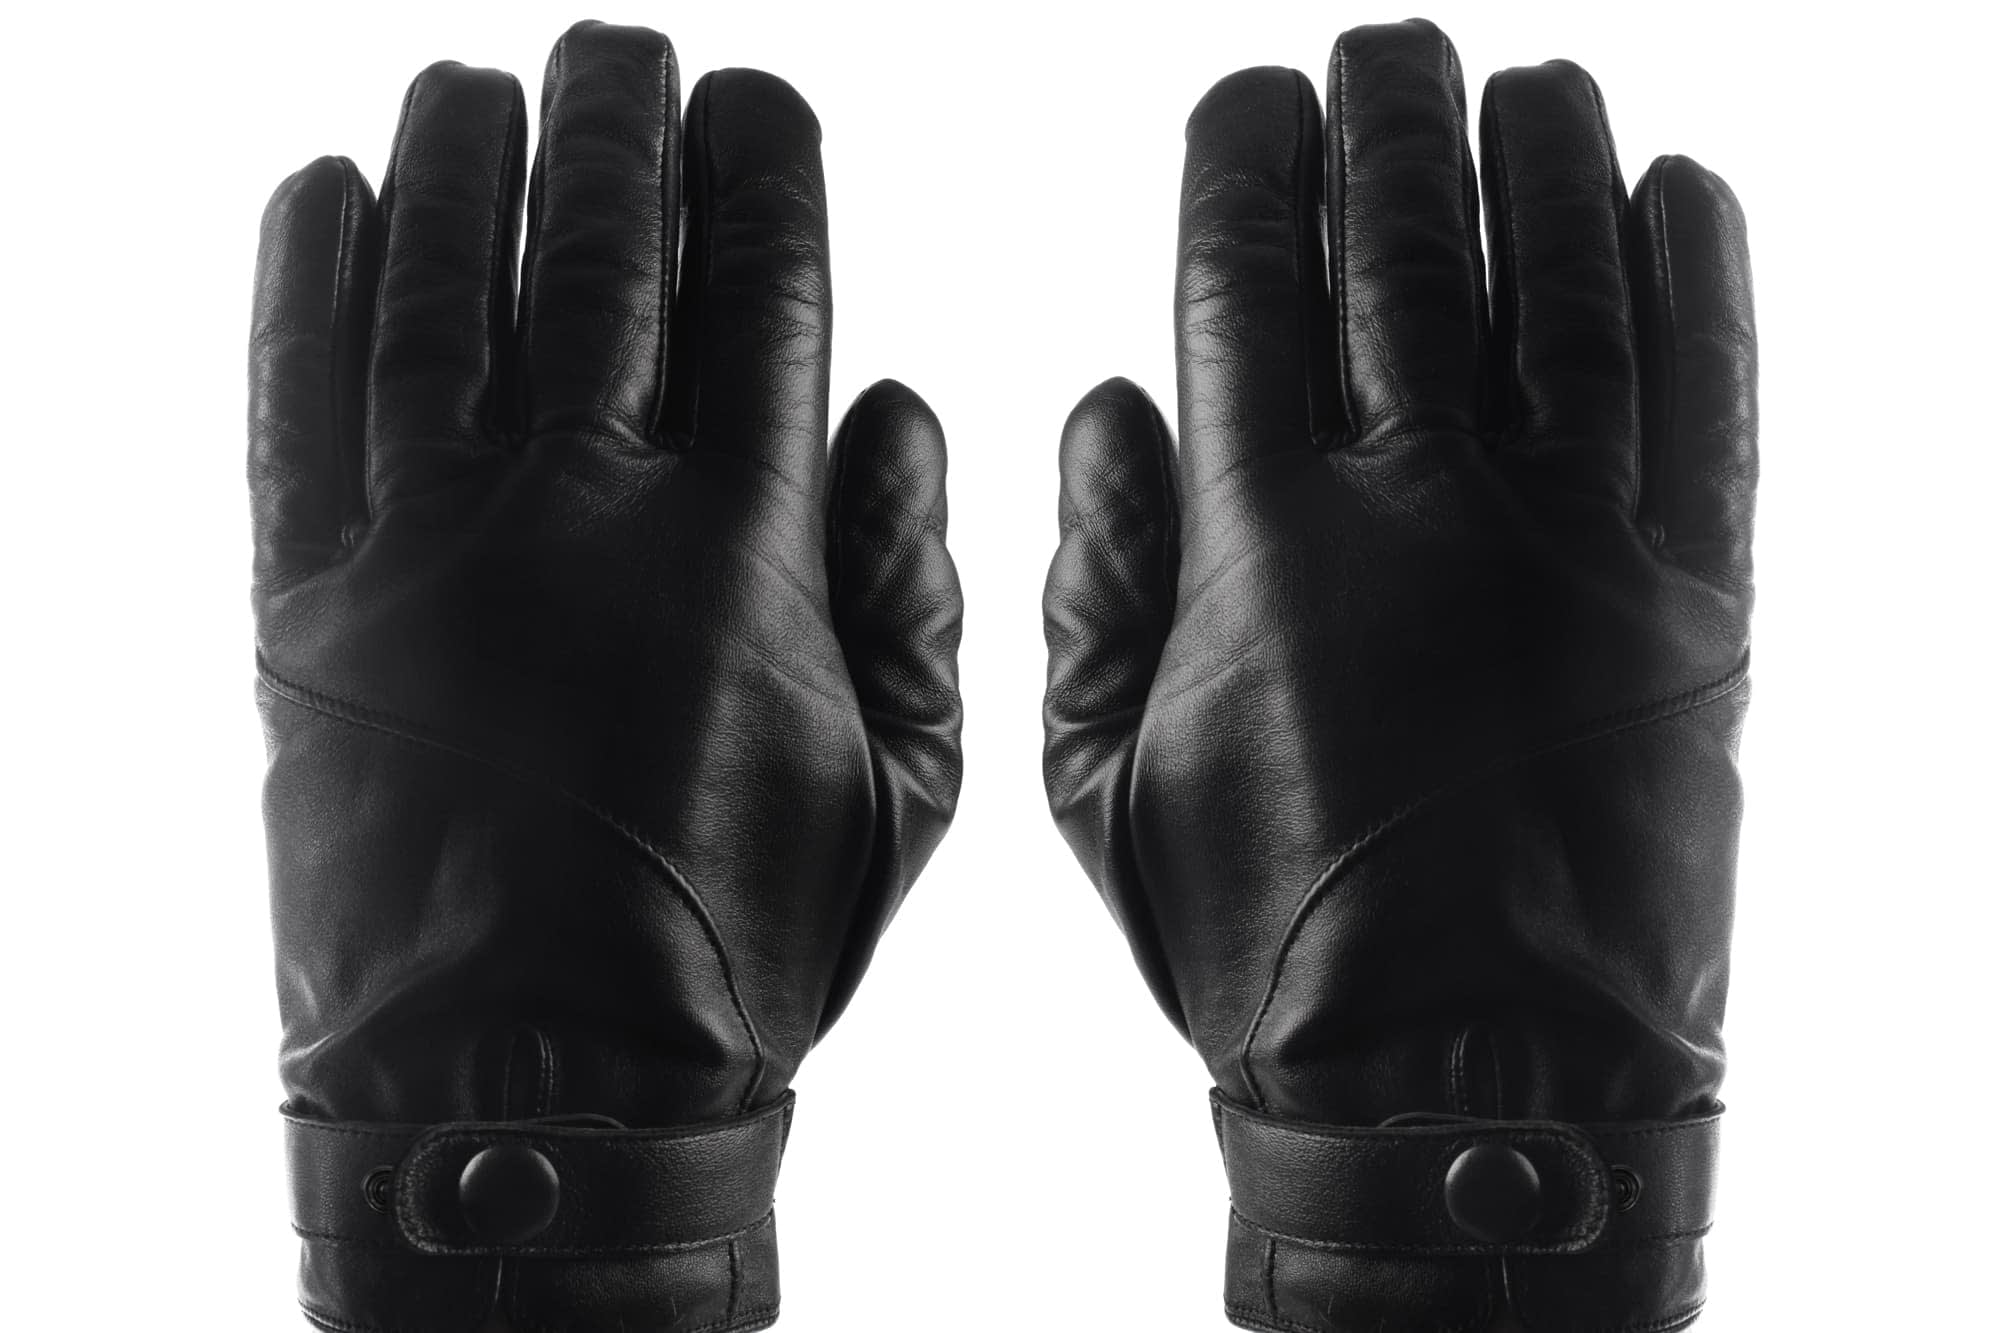 leather touchscreen gloves by mujjo b IMG 0202